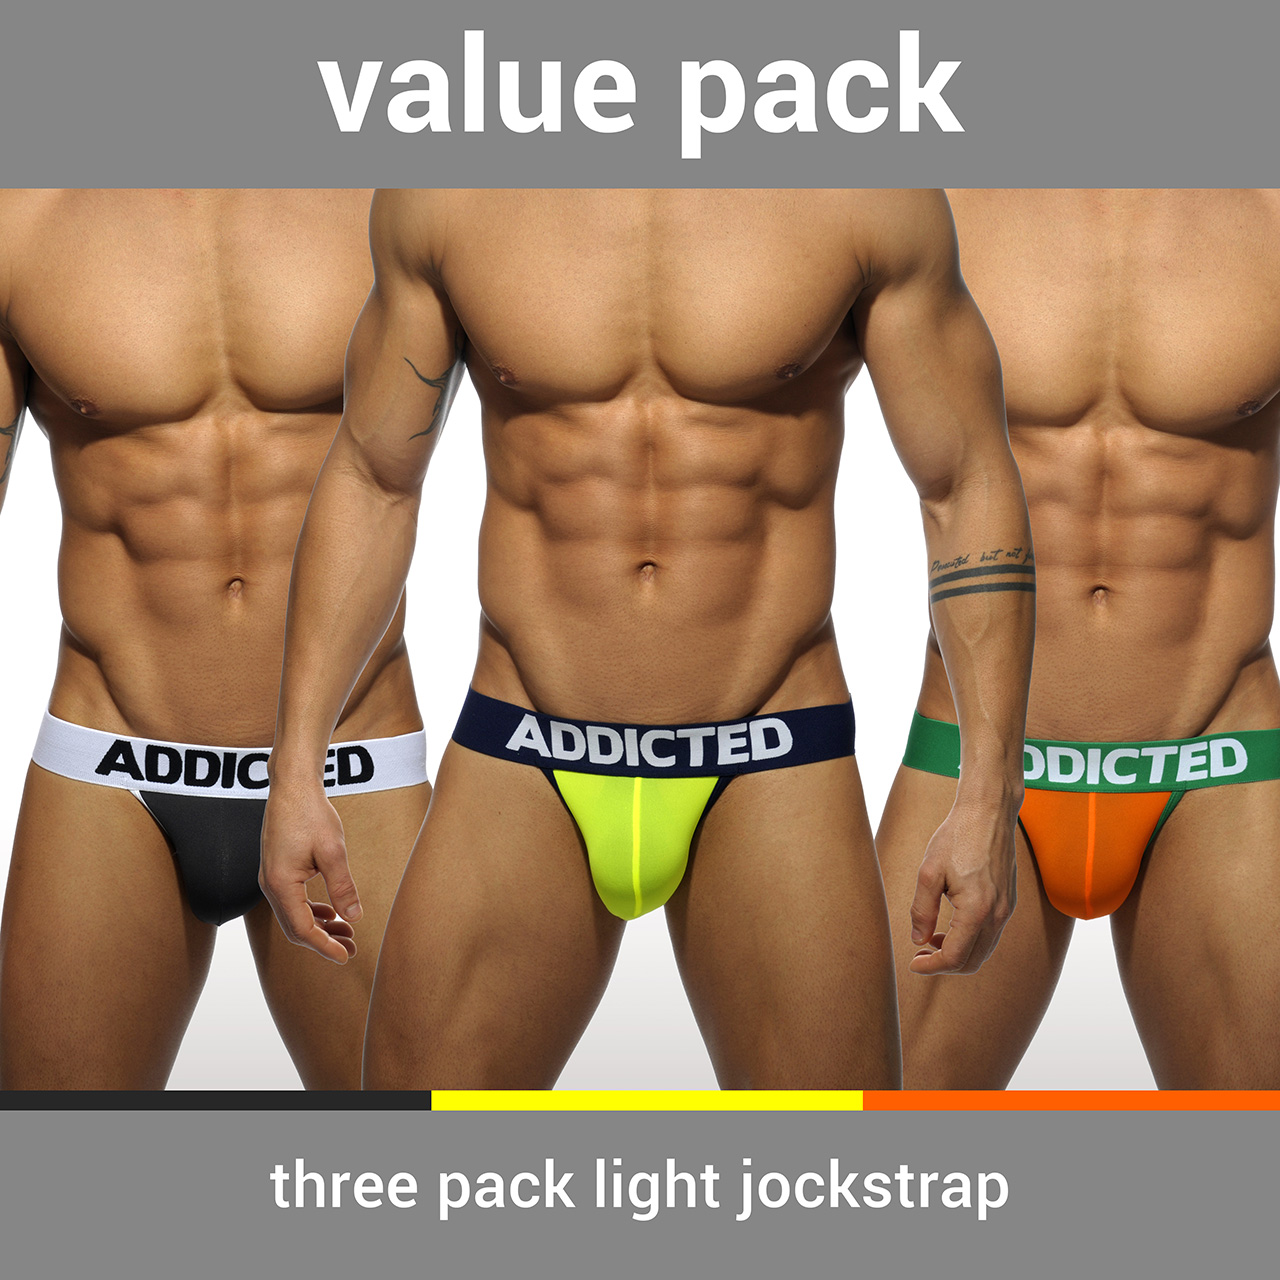 3 PACK LIGHT JOCKSTRAP 3 COLOURS